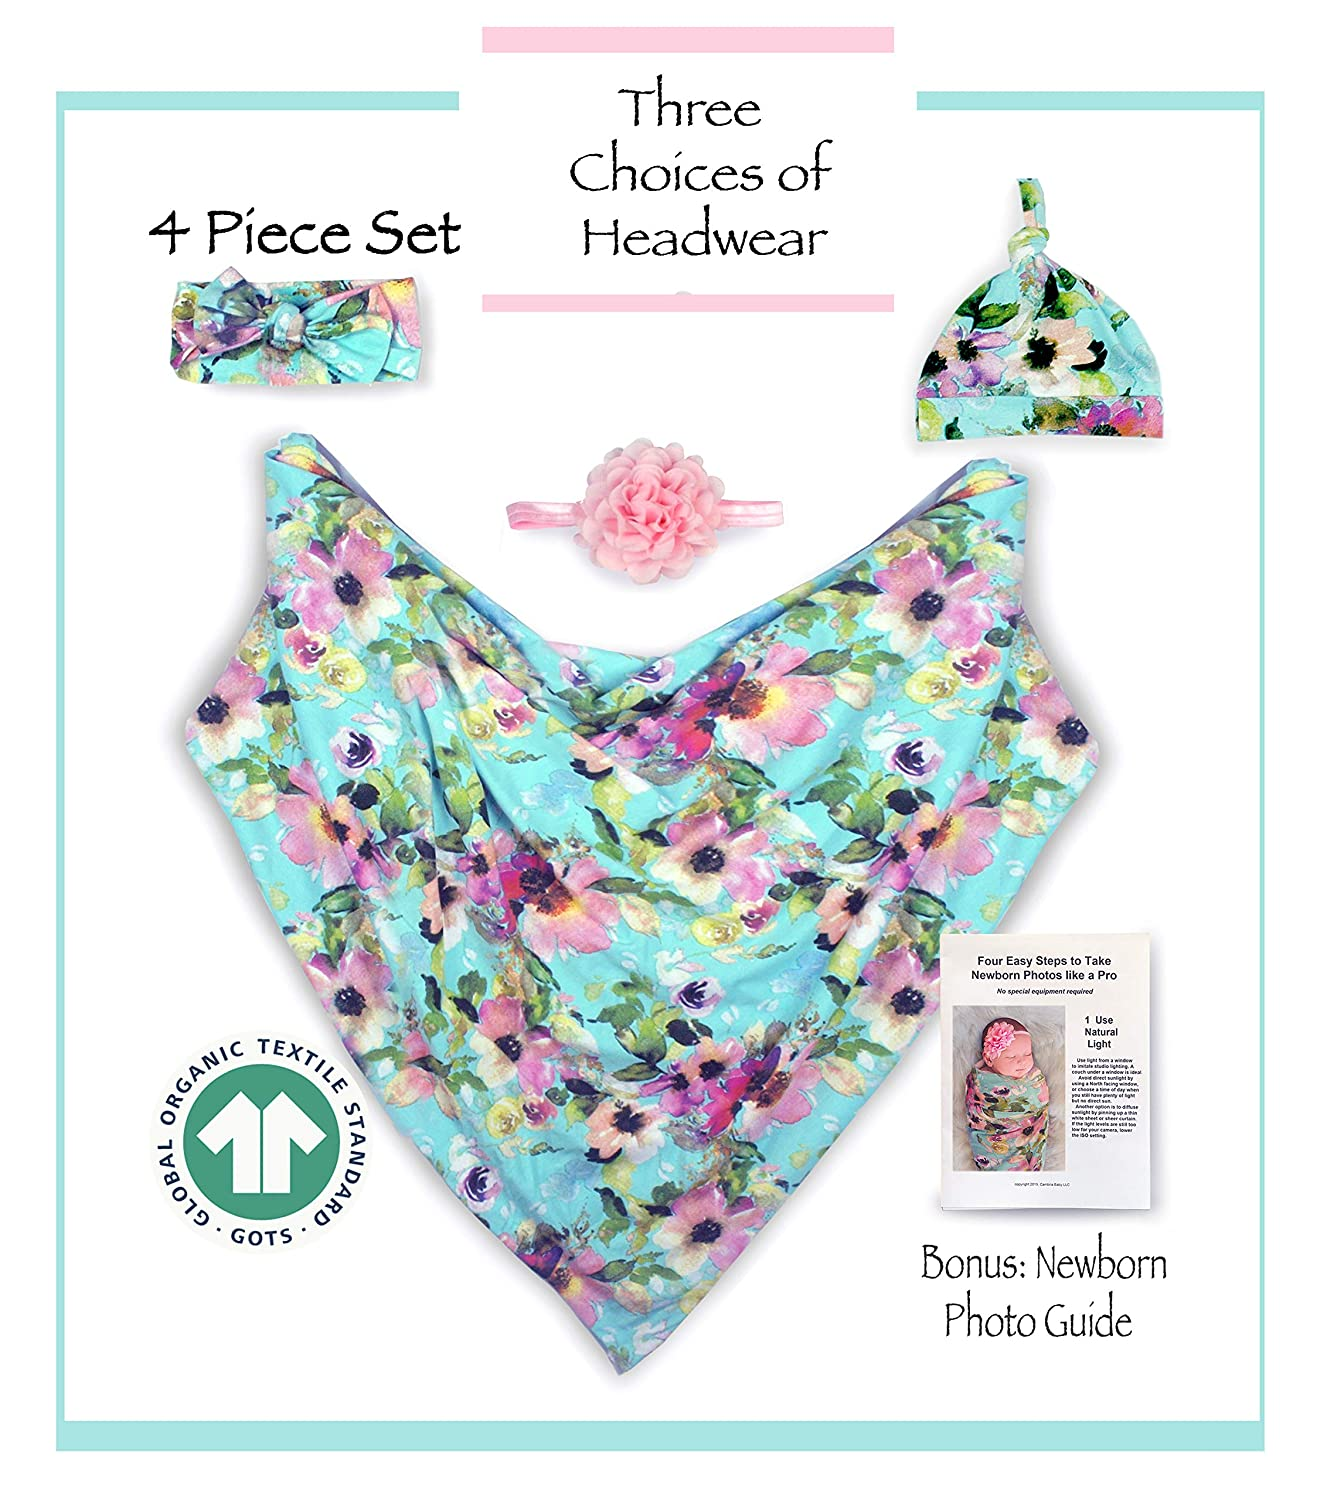 2 Headbands and Matching Hat for Photos and Everyday Use Bonus How to Take Baby Photos Like a Pro Guide Organic Cotton 4 Piece Set Aqua Floral. 1 Large 40x40 Swaddle Blanket